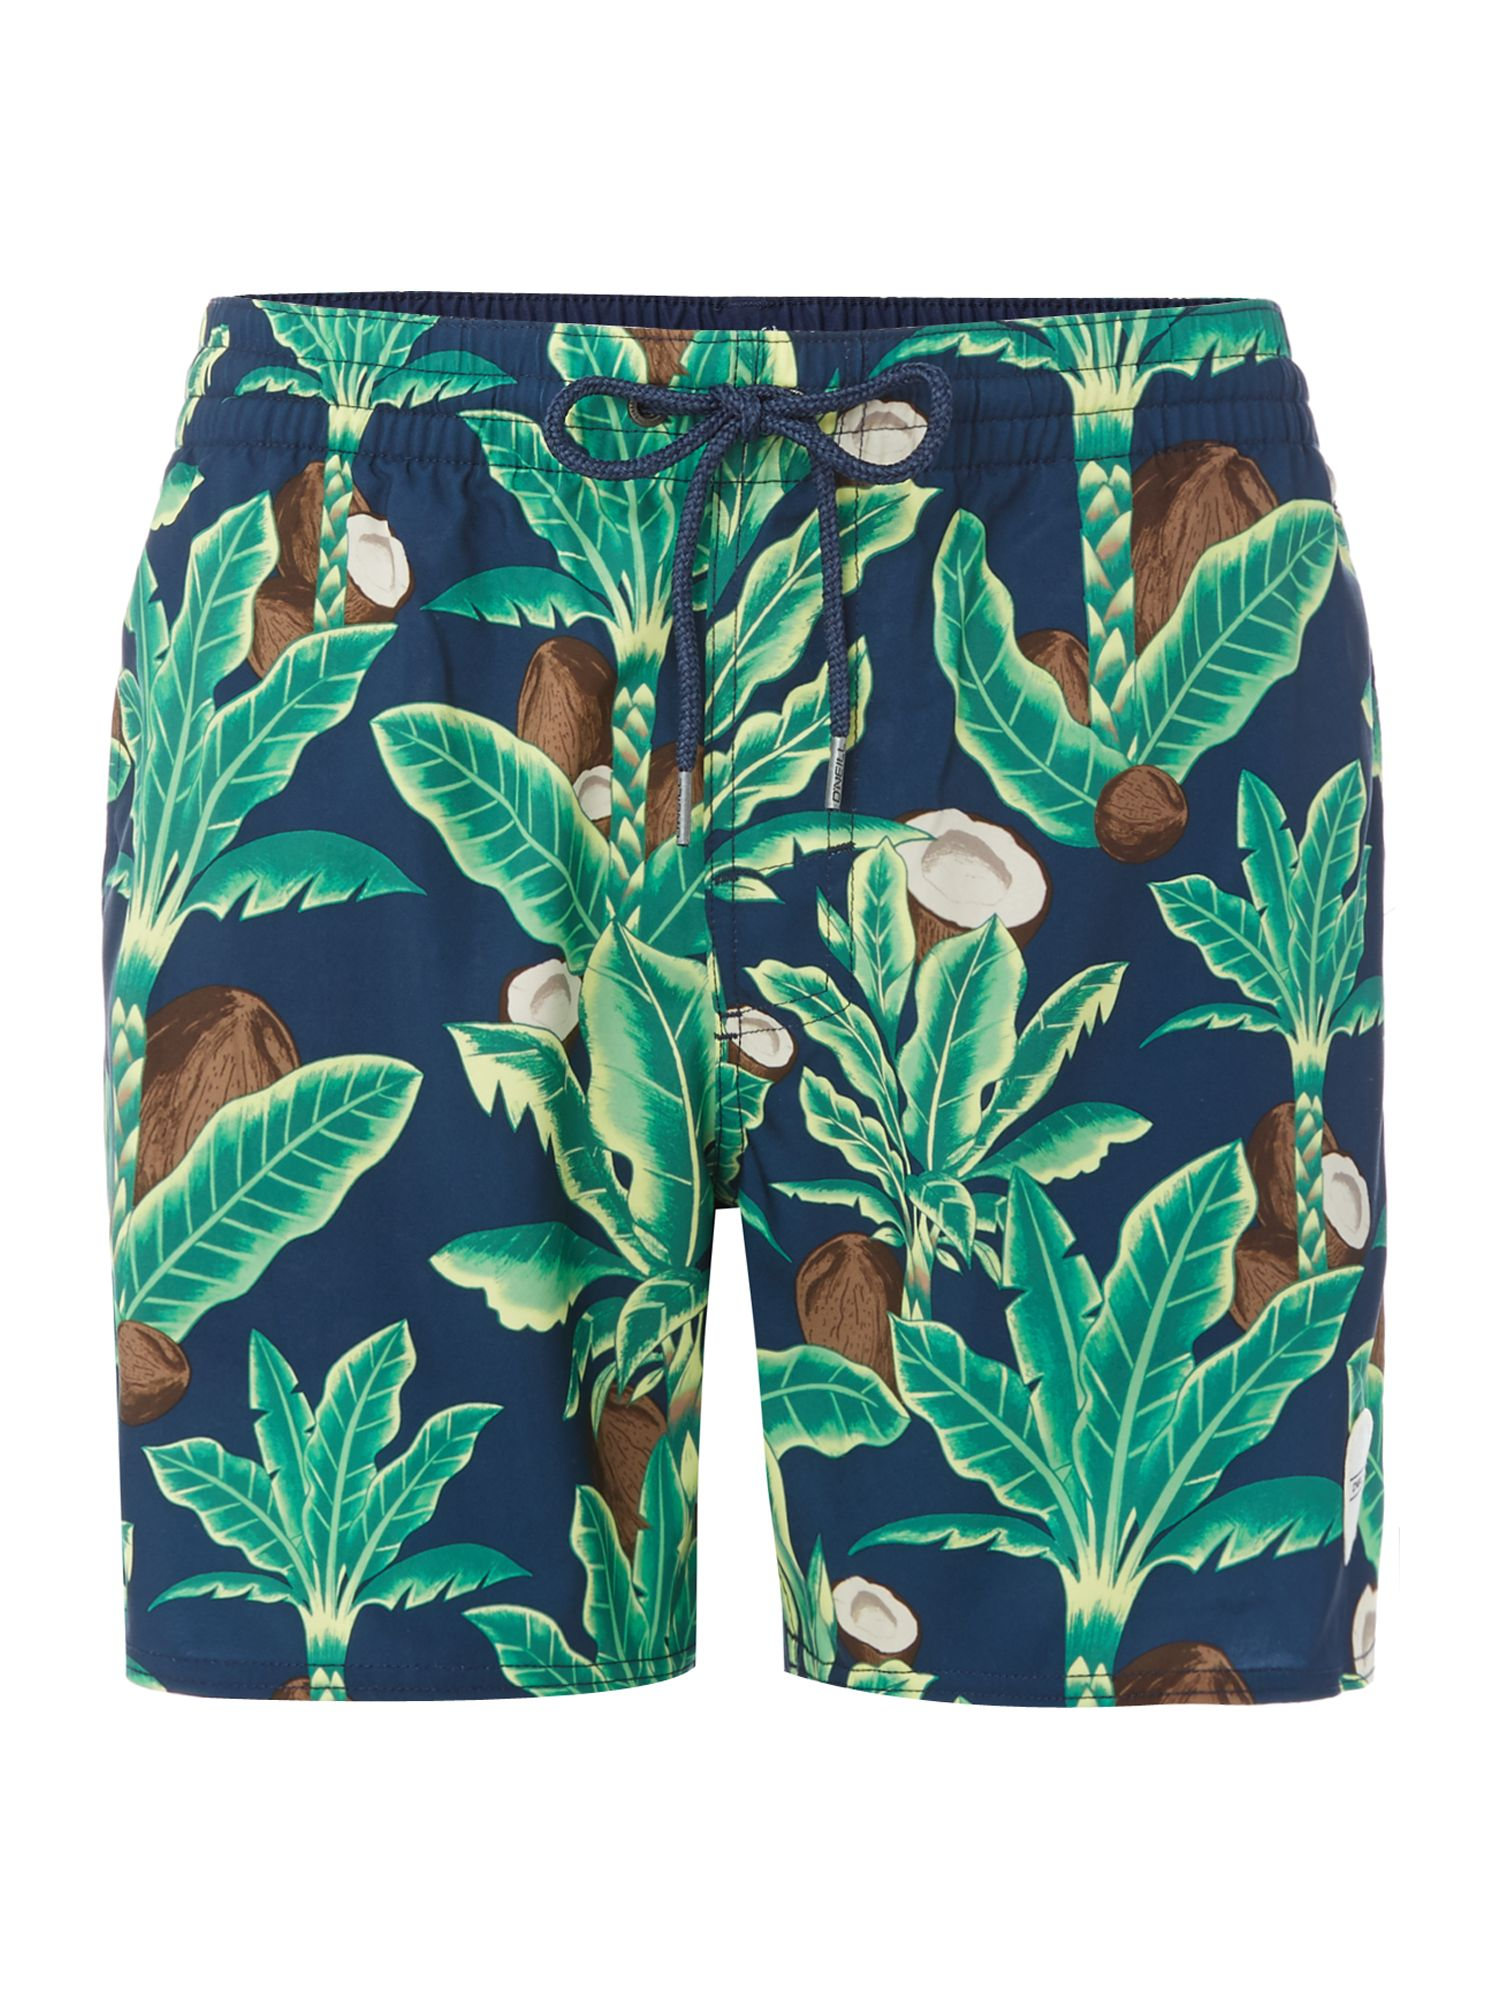 Men's O'Neill Venturer shorts, Green